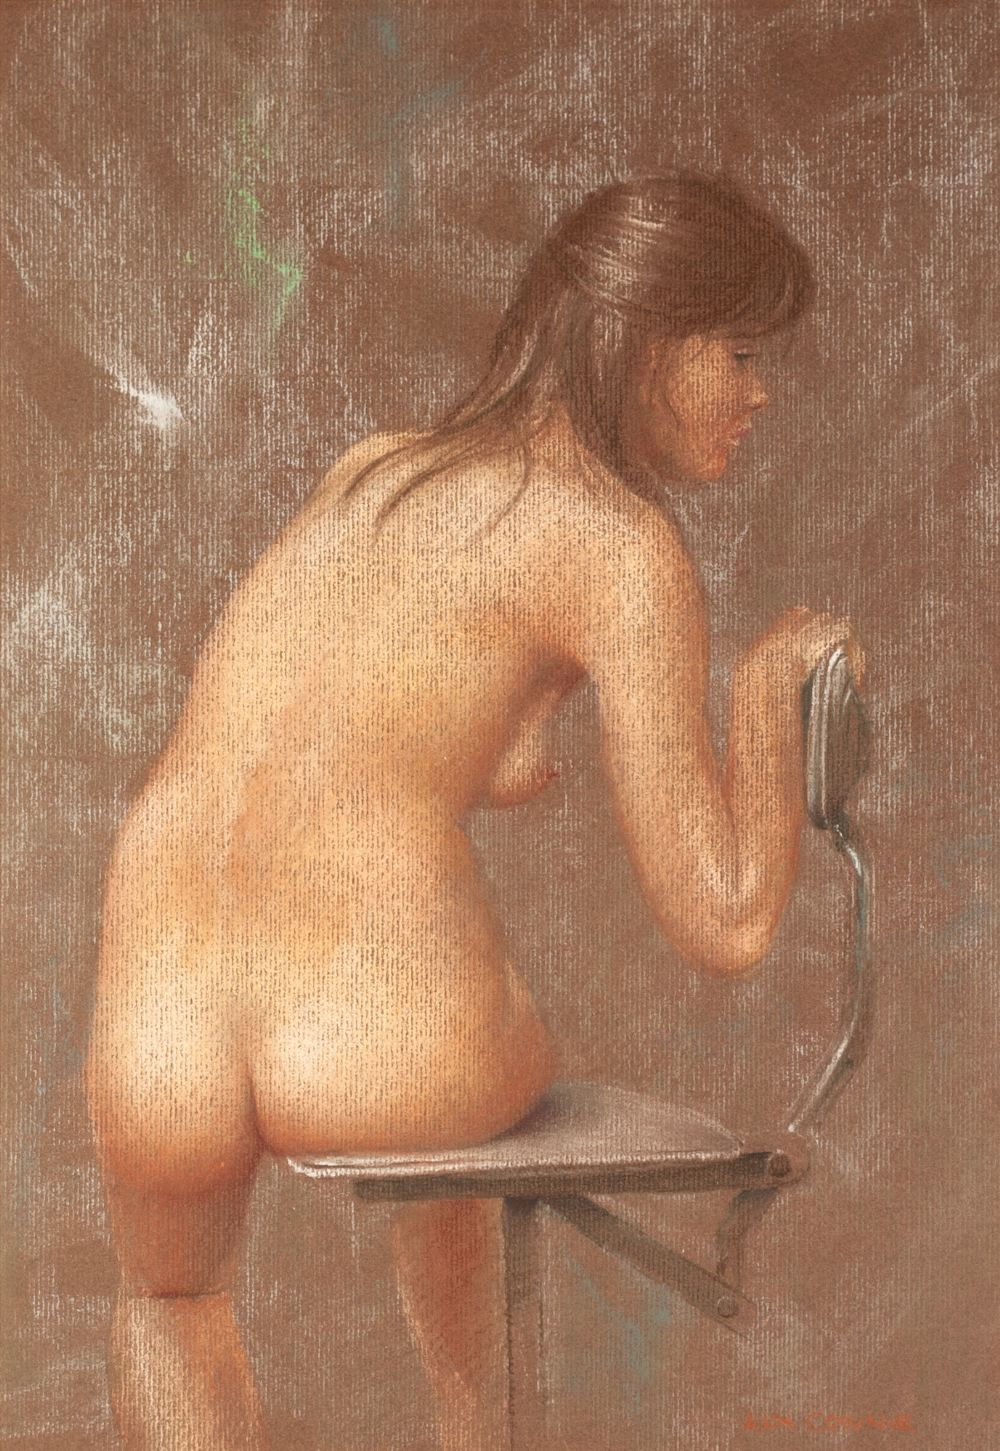 Lot 57 - ALN COWNIE PASTEL DRAWING ON INGRES PAPER 'Seated female nude, back view' Signed lower right,